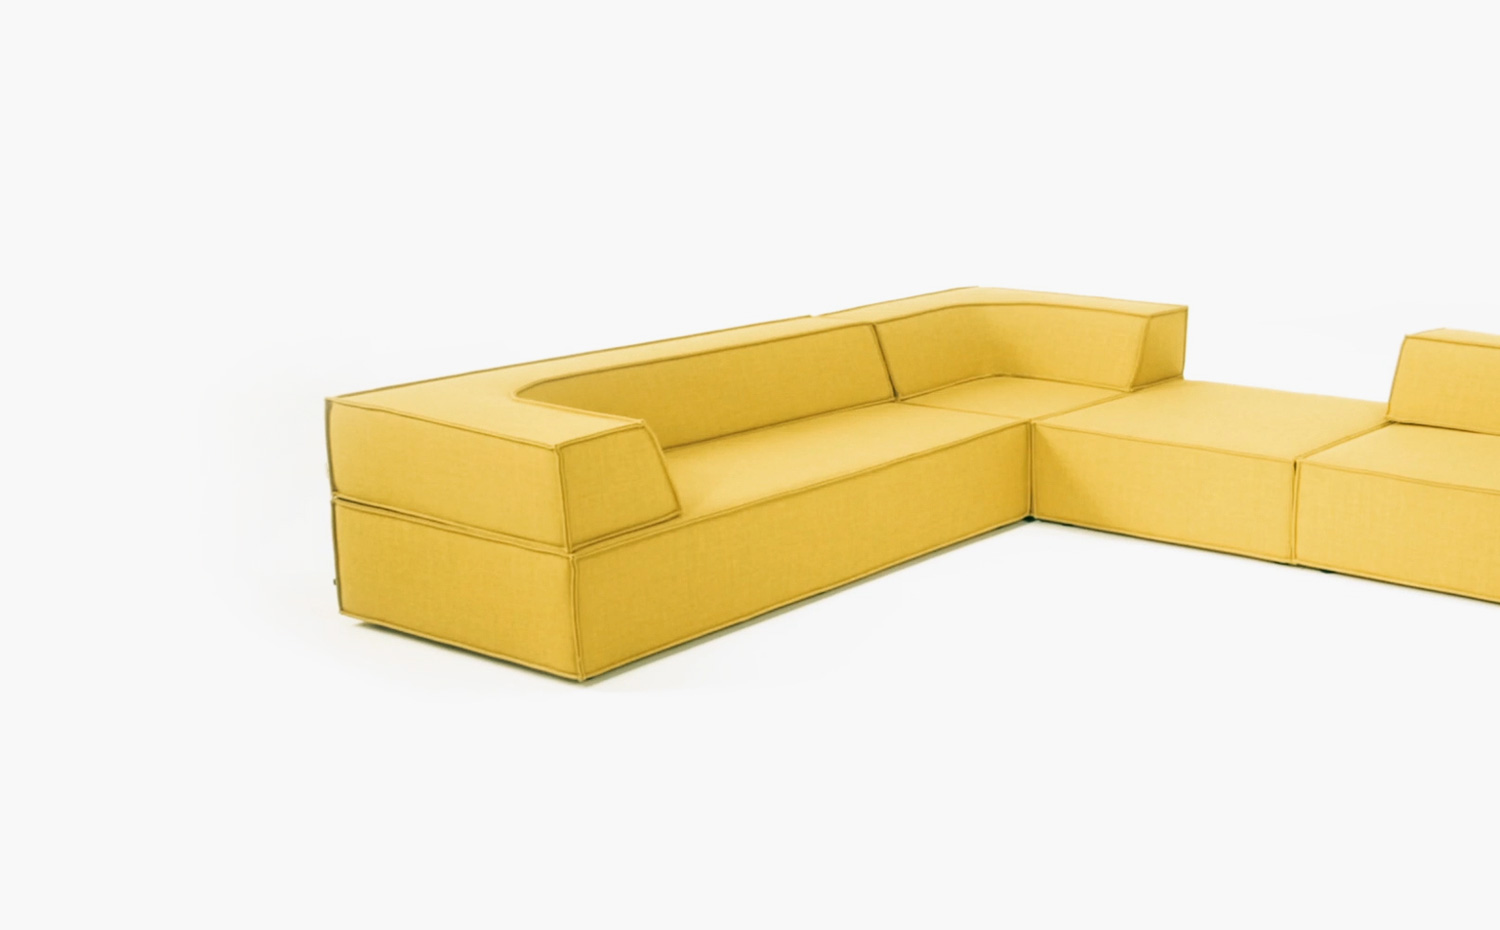 cor sofa mell lounge sectional sofa by cor design jehs laub thesofa. Black Bedroom Furniture Sets. Home Design Ideas